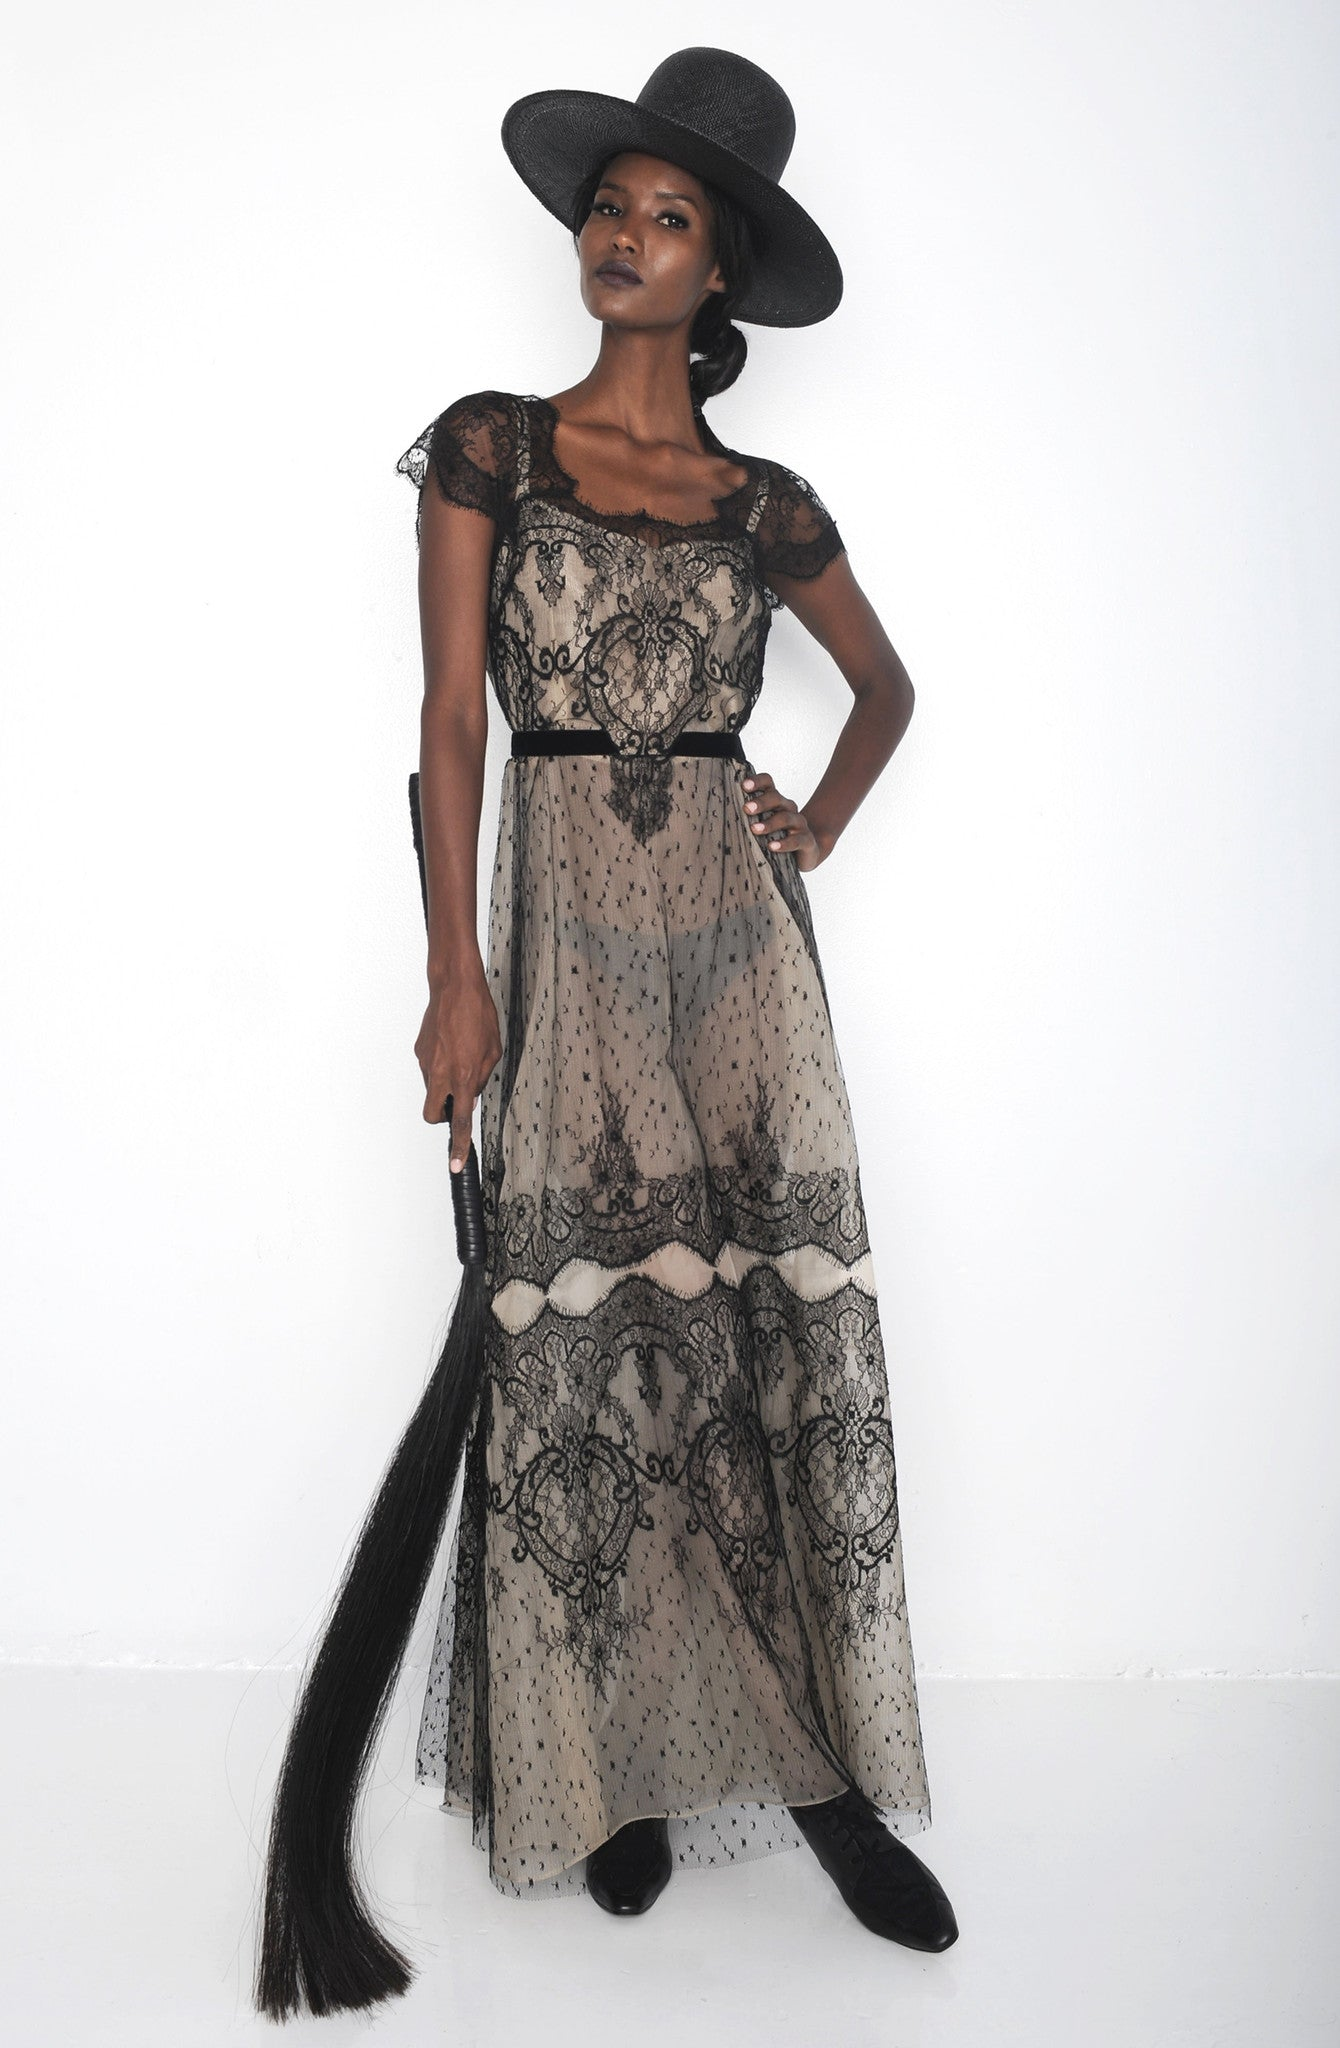 Fatima Siad IMG Model Wendy Nichol Clothing Designer Ready to Wear Fashion Runway Show SS16 Guardians of Light Afternoon Delight French Solstiss Silk Lace Nude Black Cut out should dress Sheer Handmade in NYC New York City Made to Measure Order Custom Tailoring Fabric Color Black Wide Brim Straw Hat Brunette Horse Hair Whip